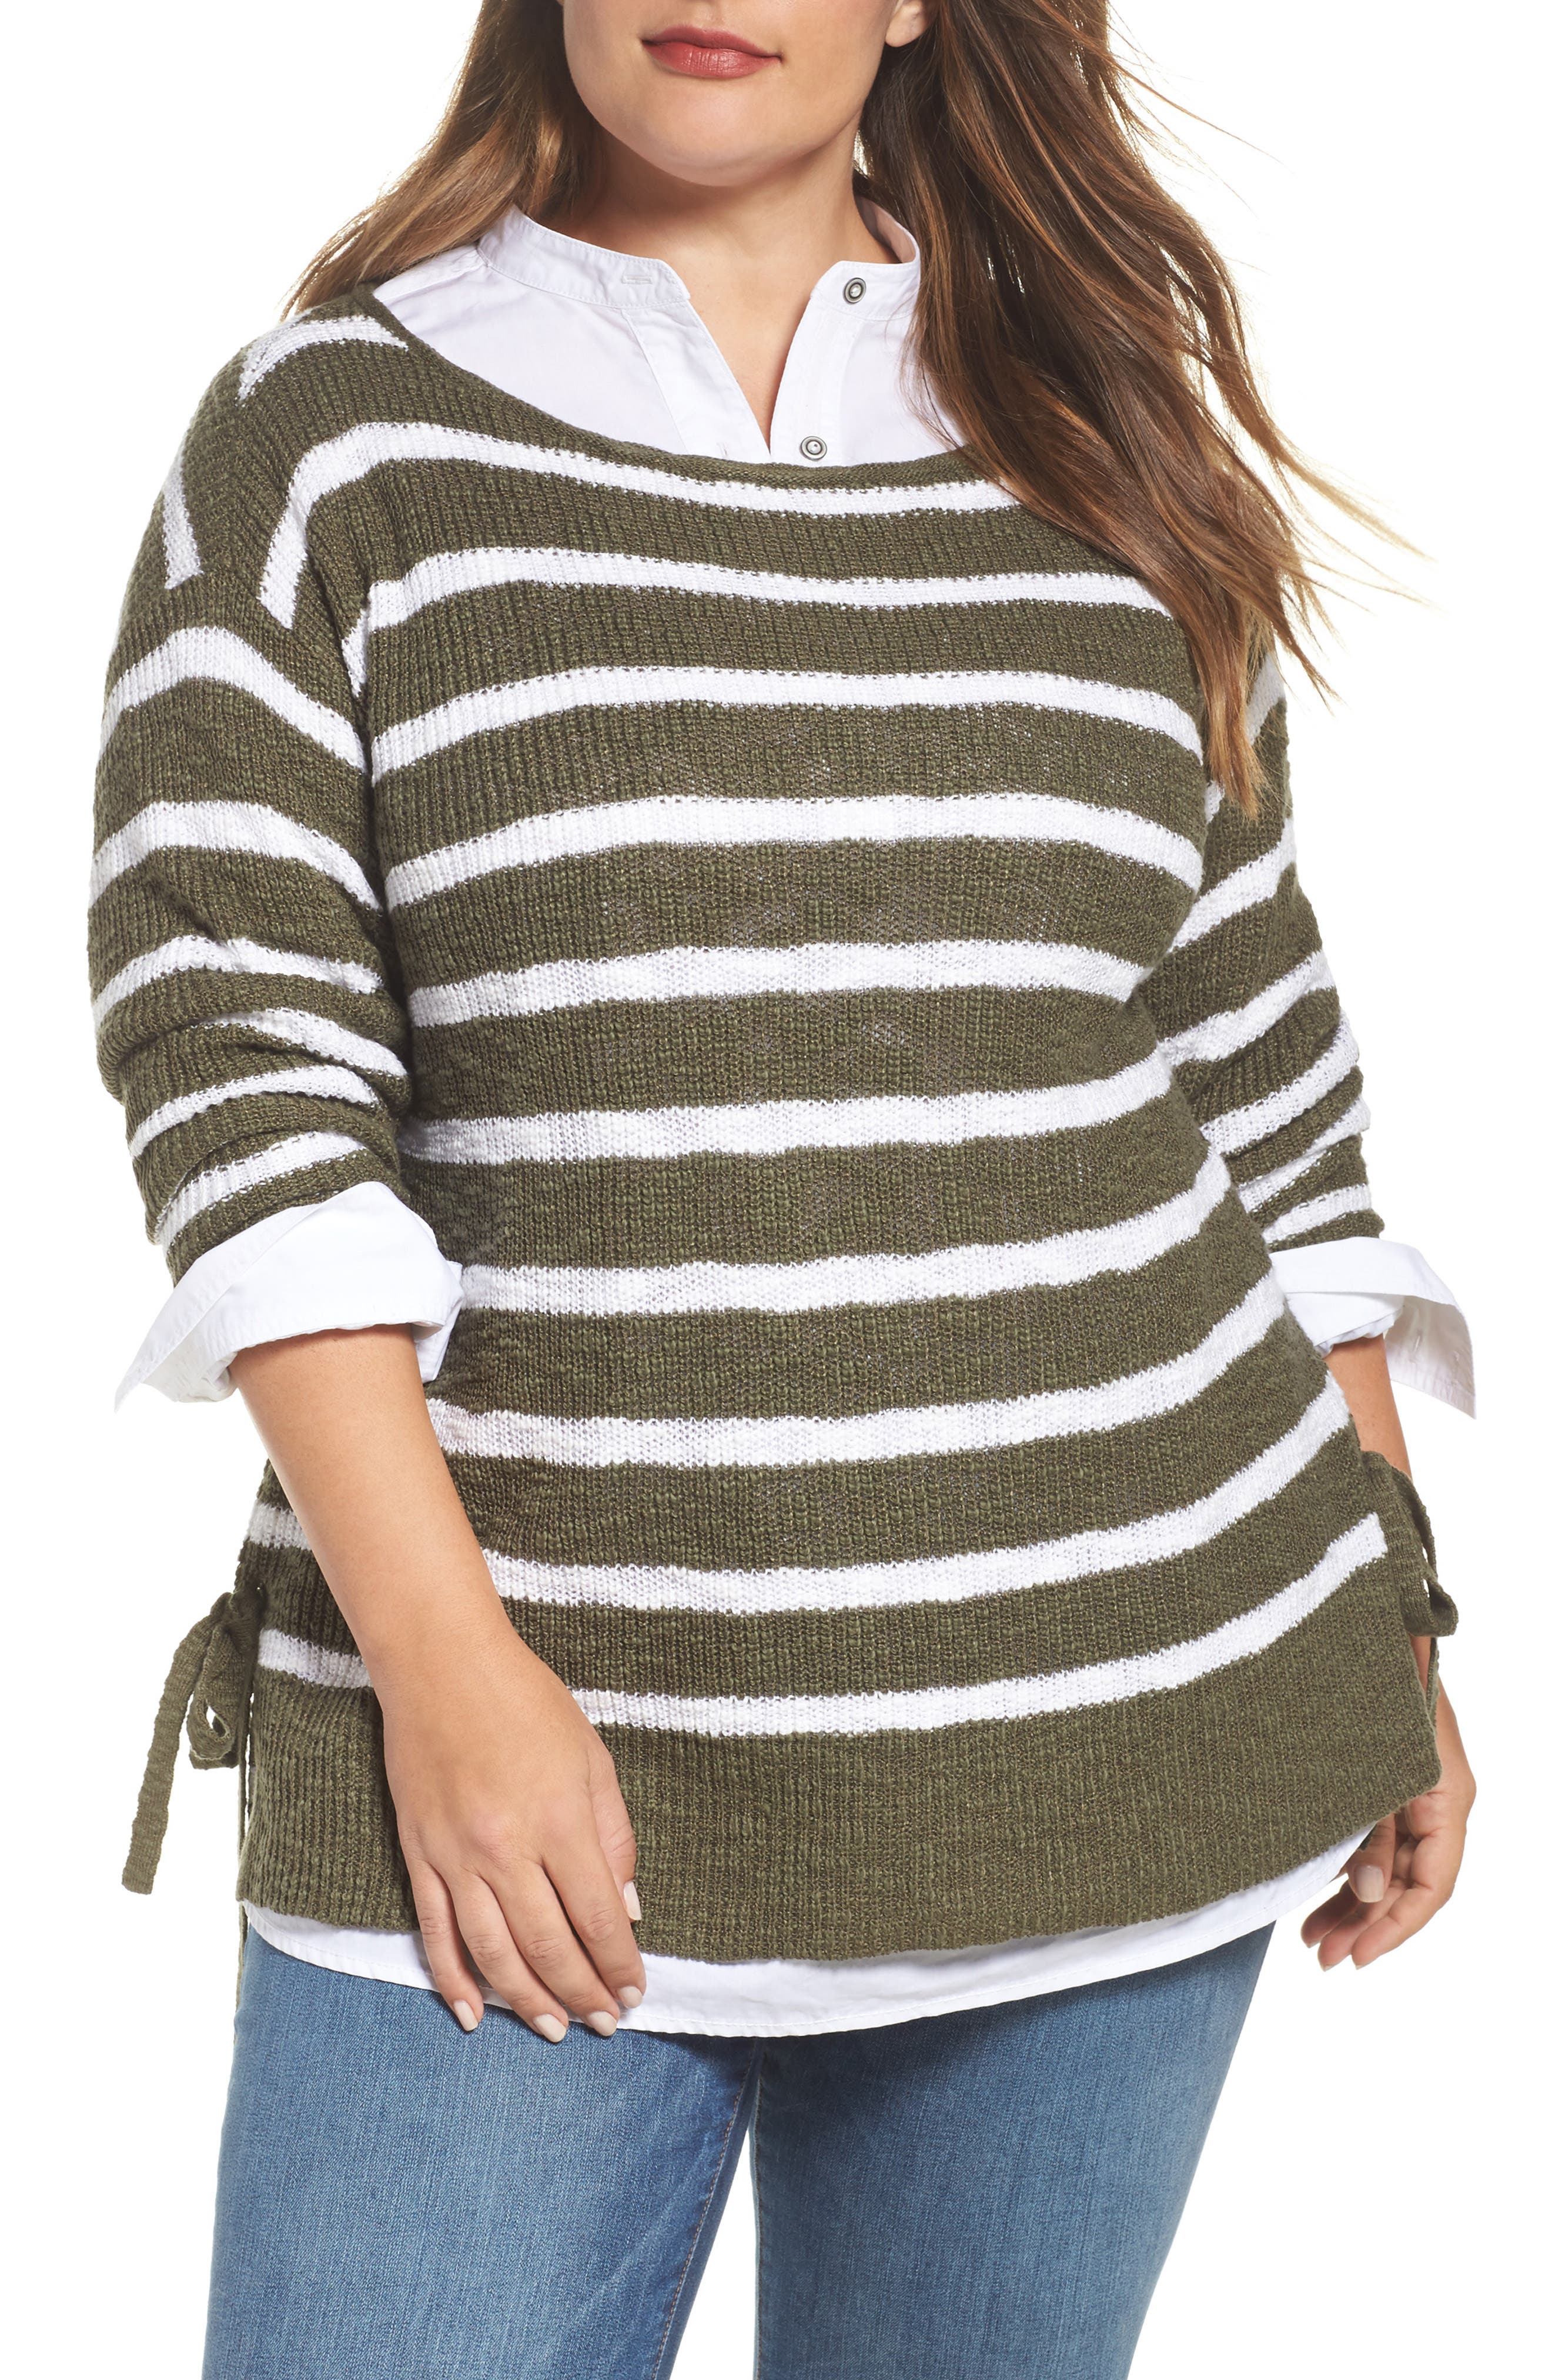 Tunic Sweater with Side Ties,                         Main,                         color, Olive- White Stripe